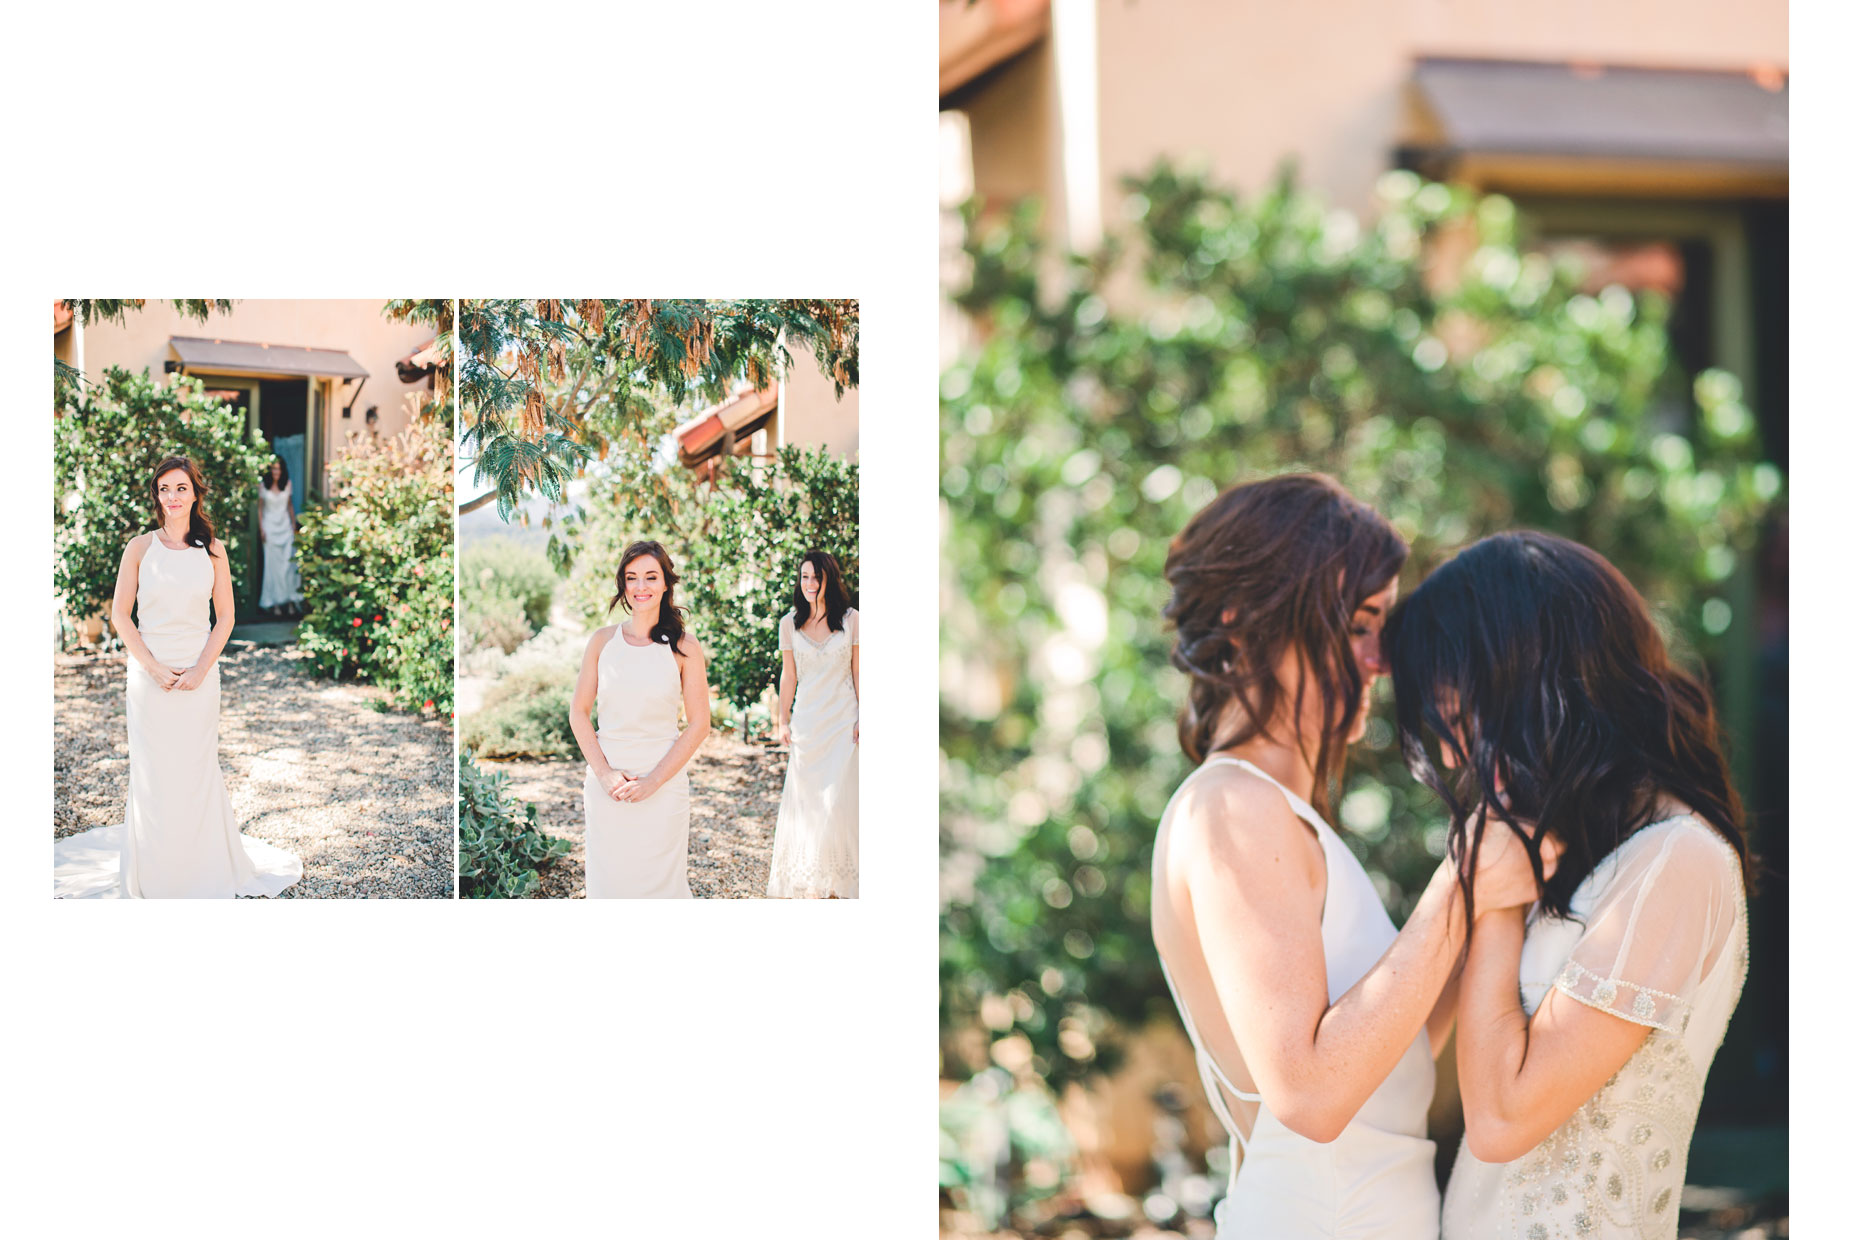 Ojai-Wedding-photographer,-Gay-and-lesbian-wedding-LA-Photographer-Ojai-Rustic-indie-Modern-wedding-photographer-2